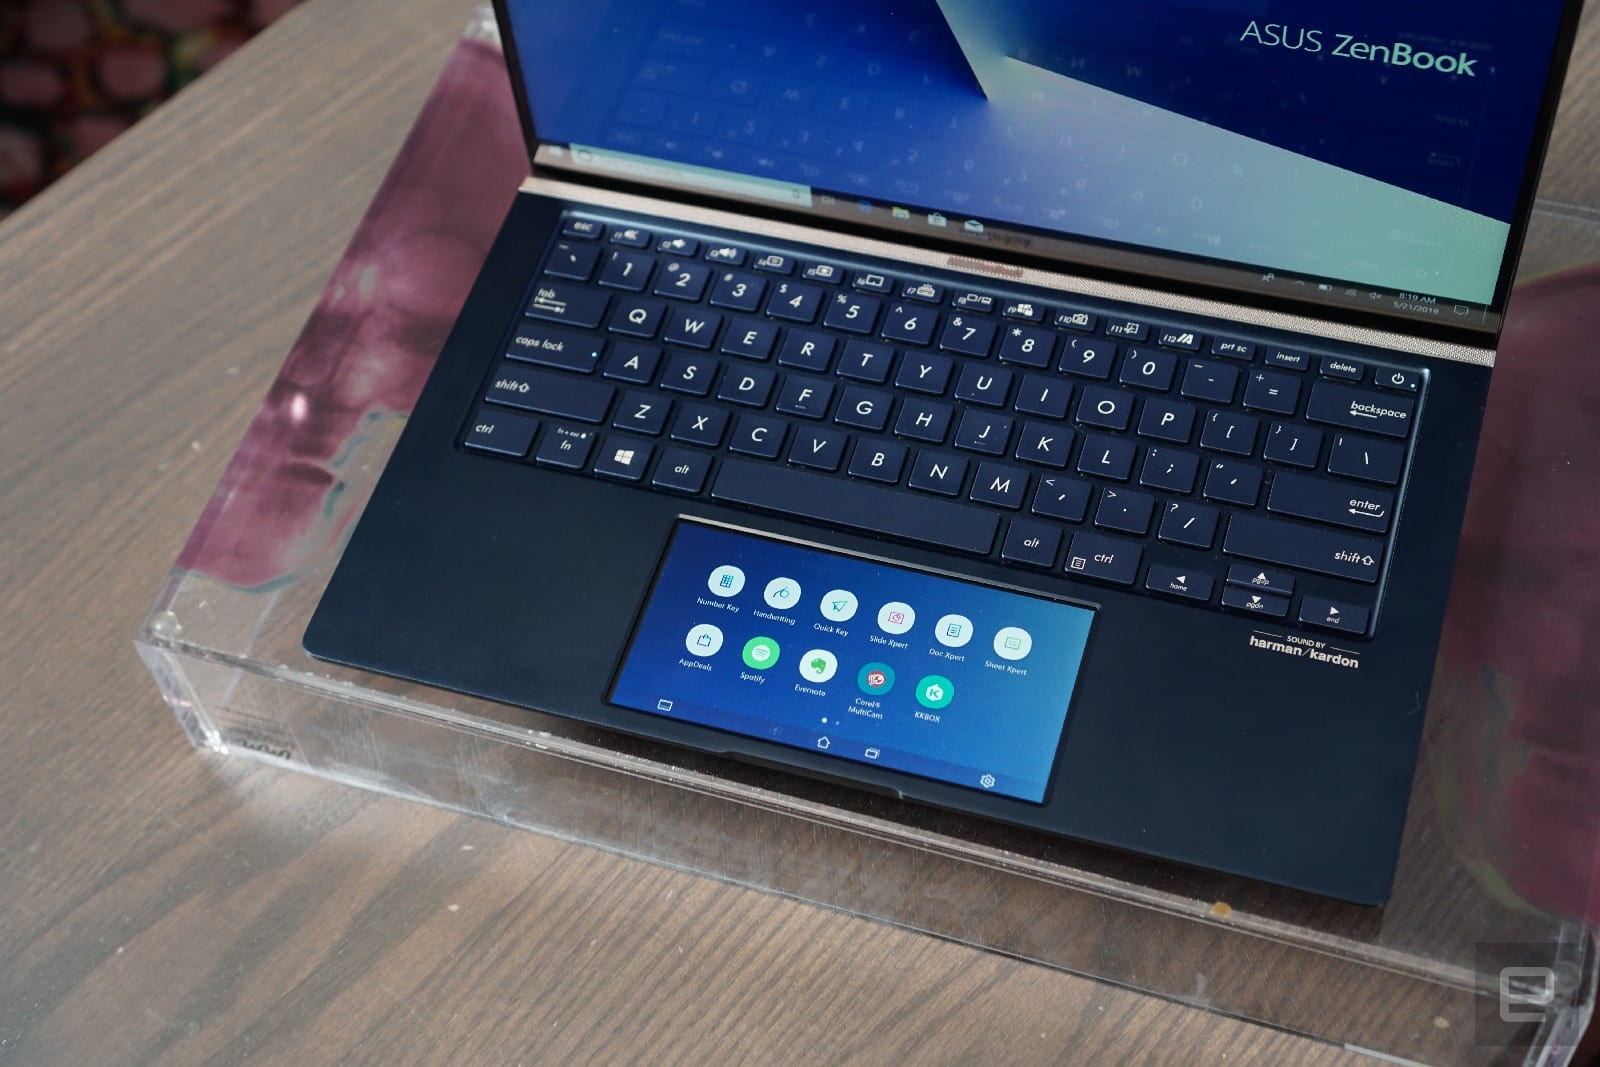 ASUS ScreenPad 2.0 touchscreen trackpad